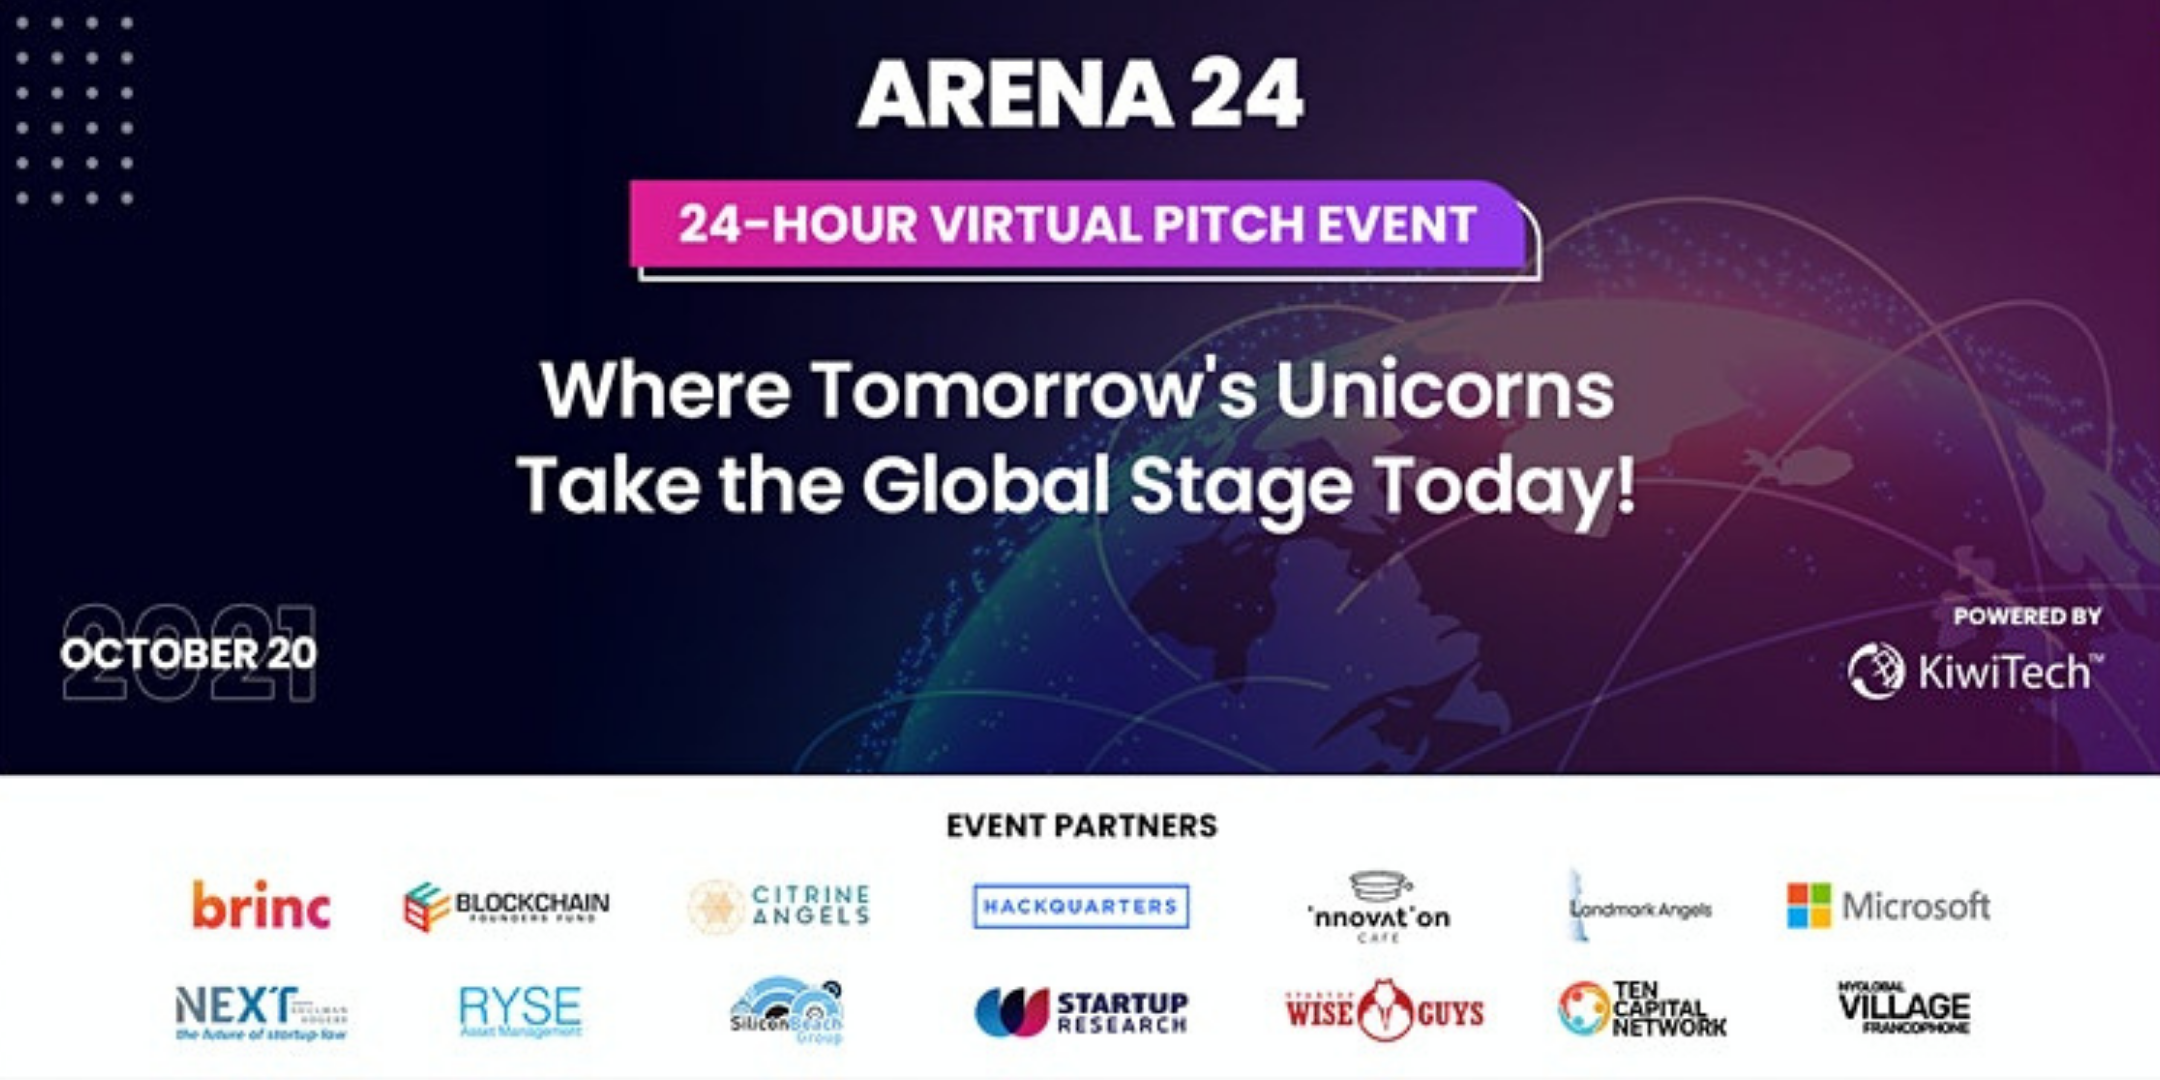 Where Tomorrow's Unicorns Take the Global Stage! - 24 Hr Virtual Pitch Event